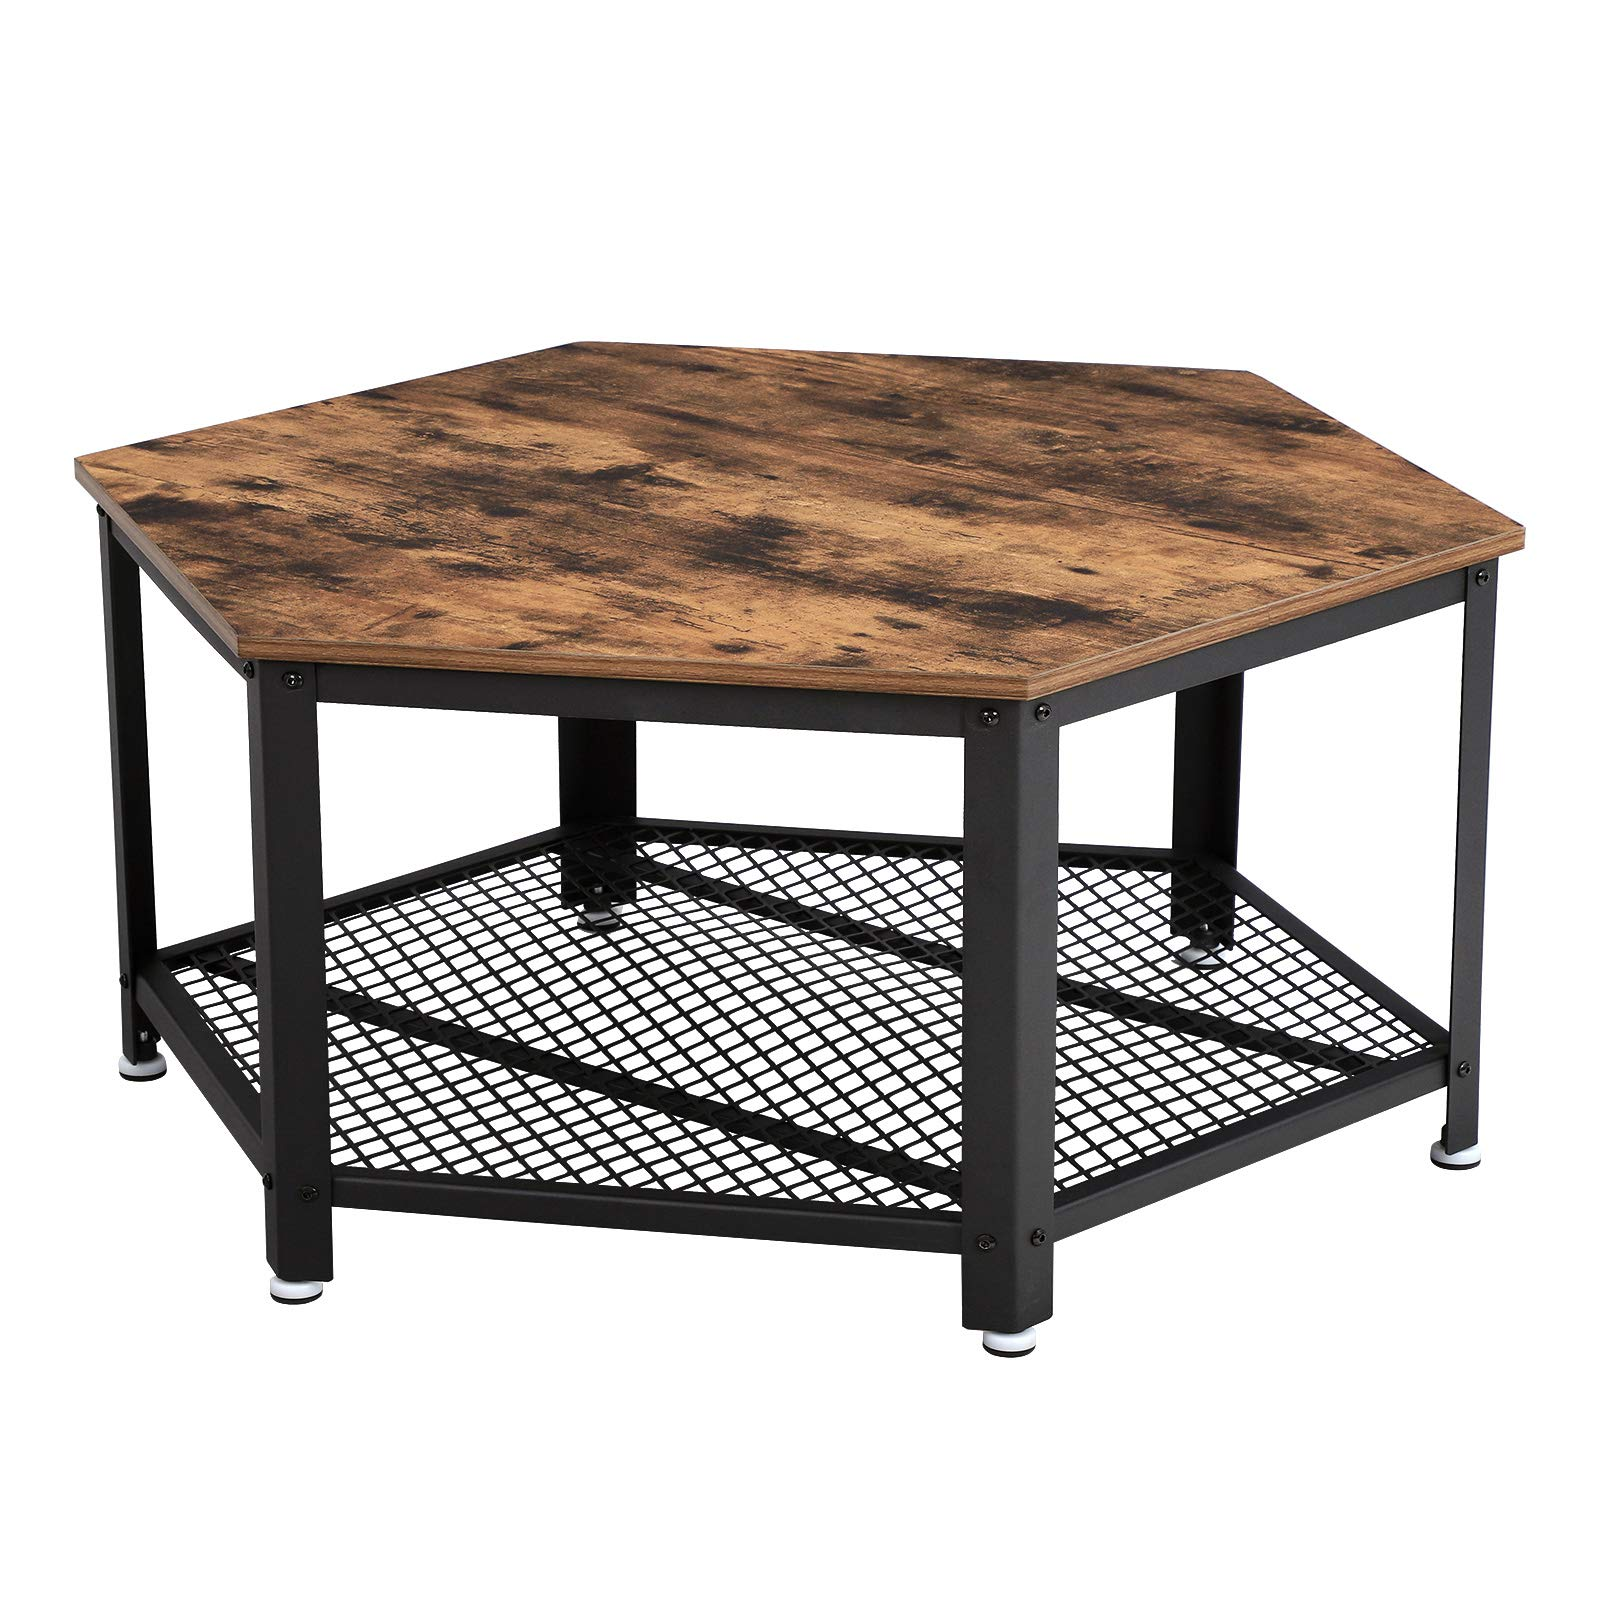 VASAGLE Industrial Coffee Table, Hexagonal Wooden Table, Stable Metal Frame and Mesh Shelf, Rustic Brown by VASAGLE